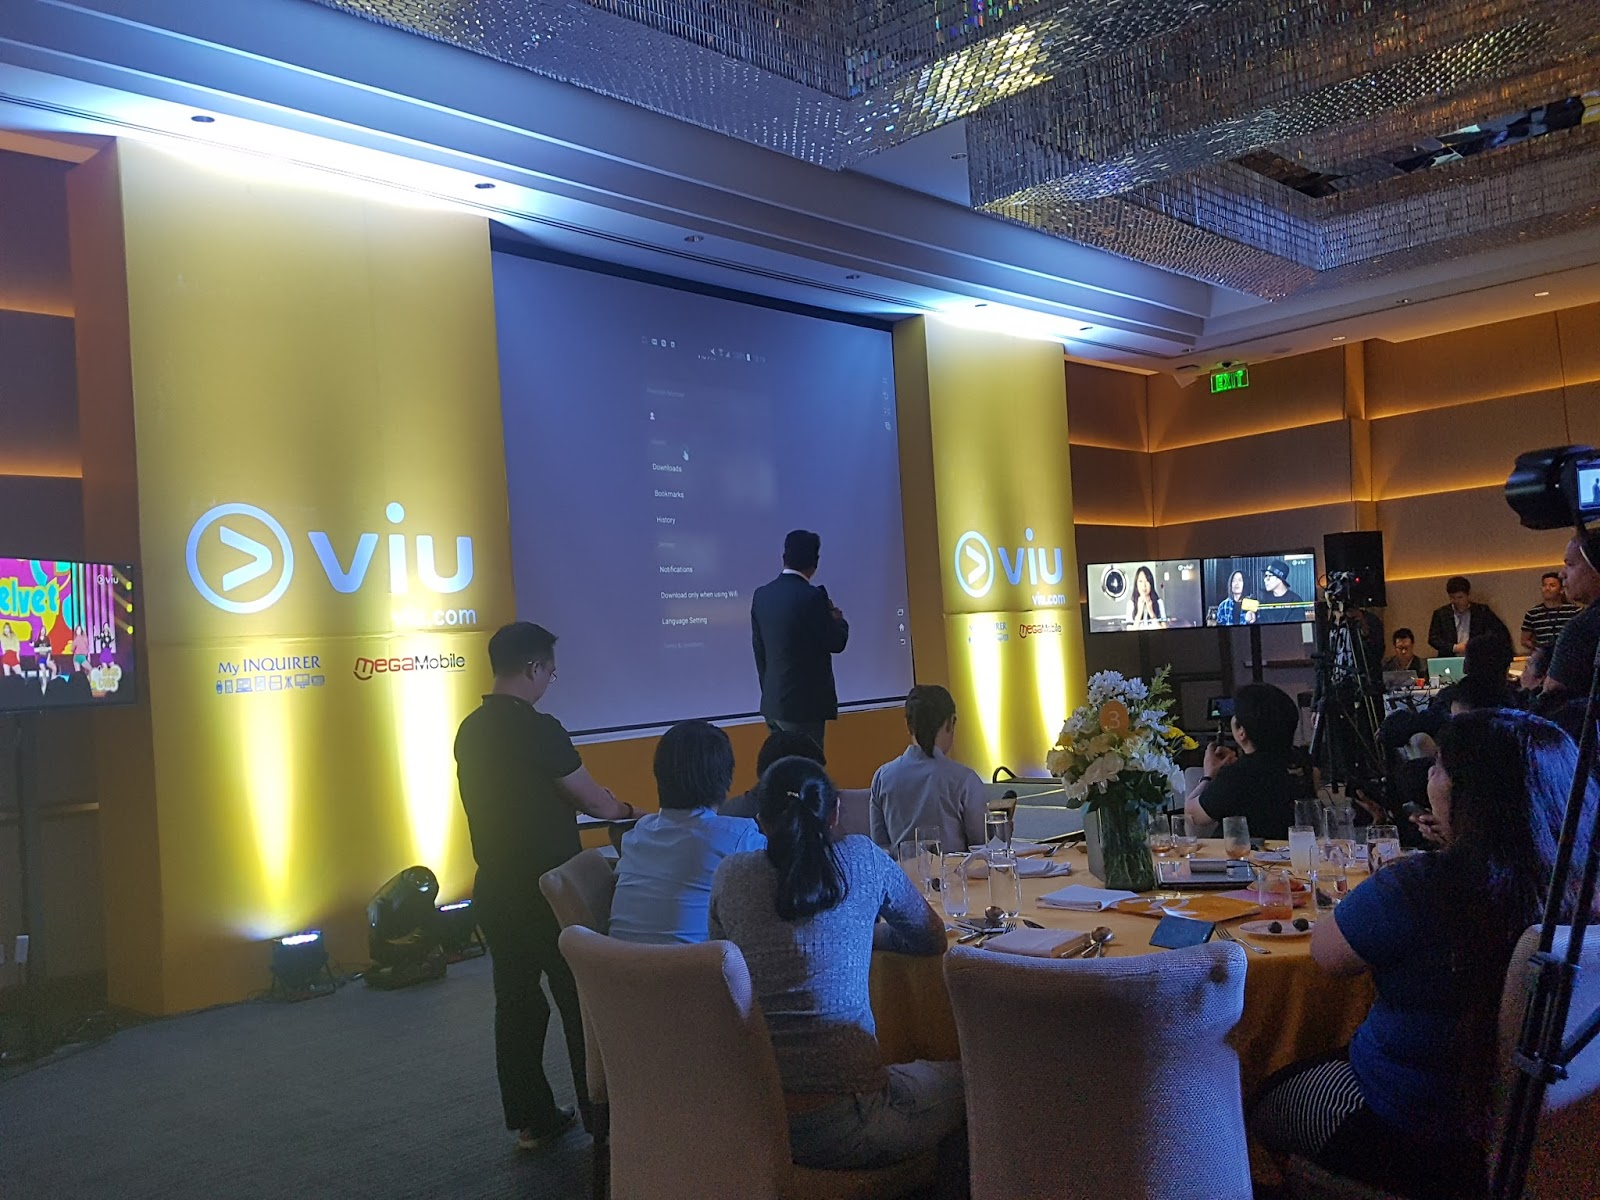 JAMPACKED LIFESTYLE: Viu Video Launched in the Philippines